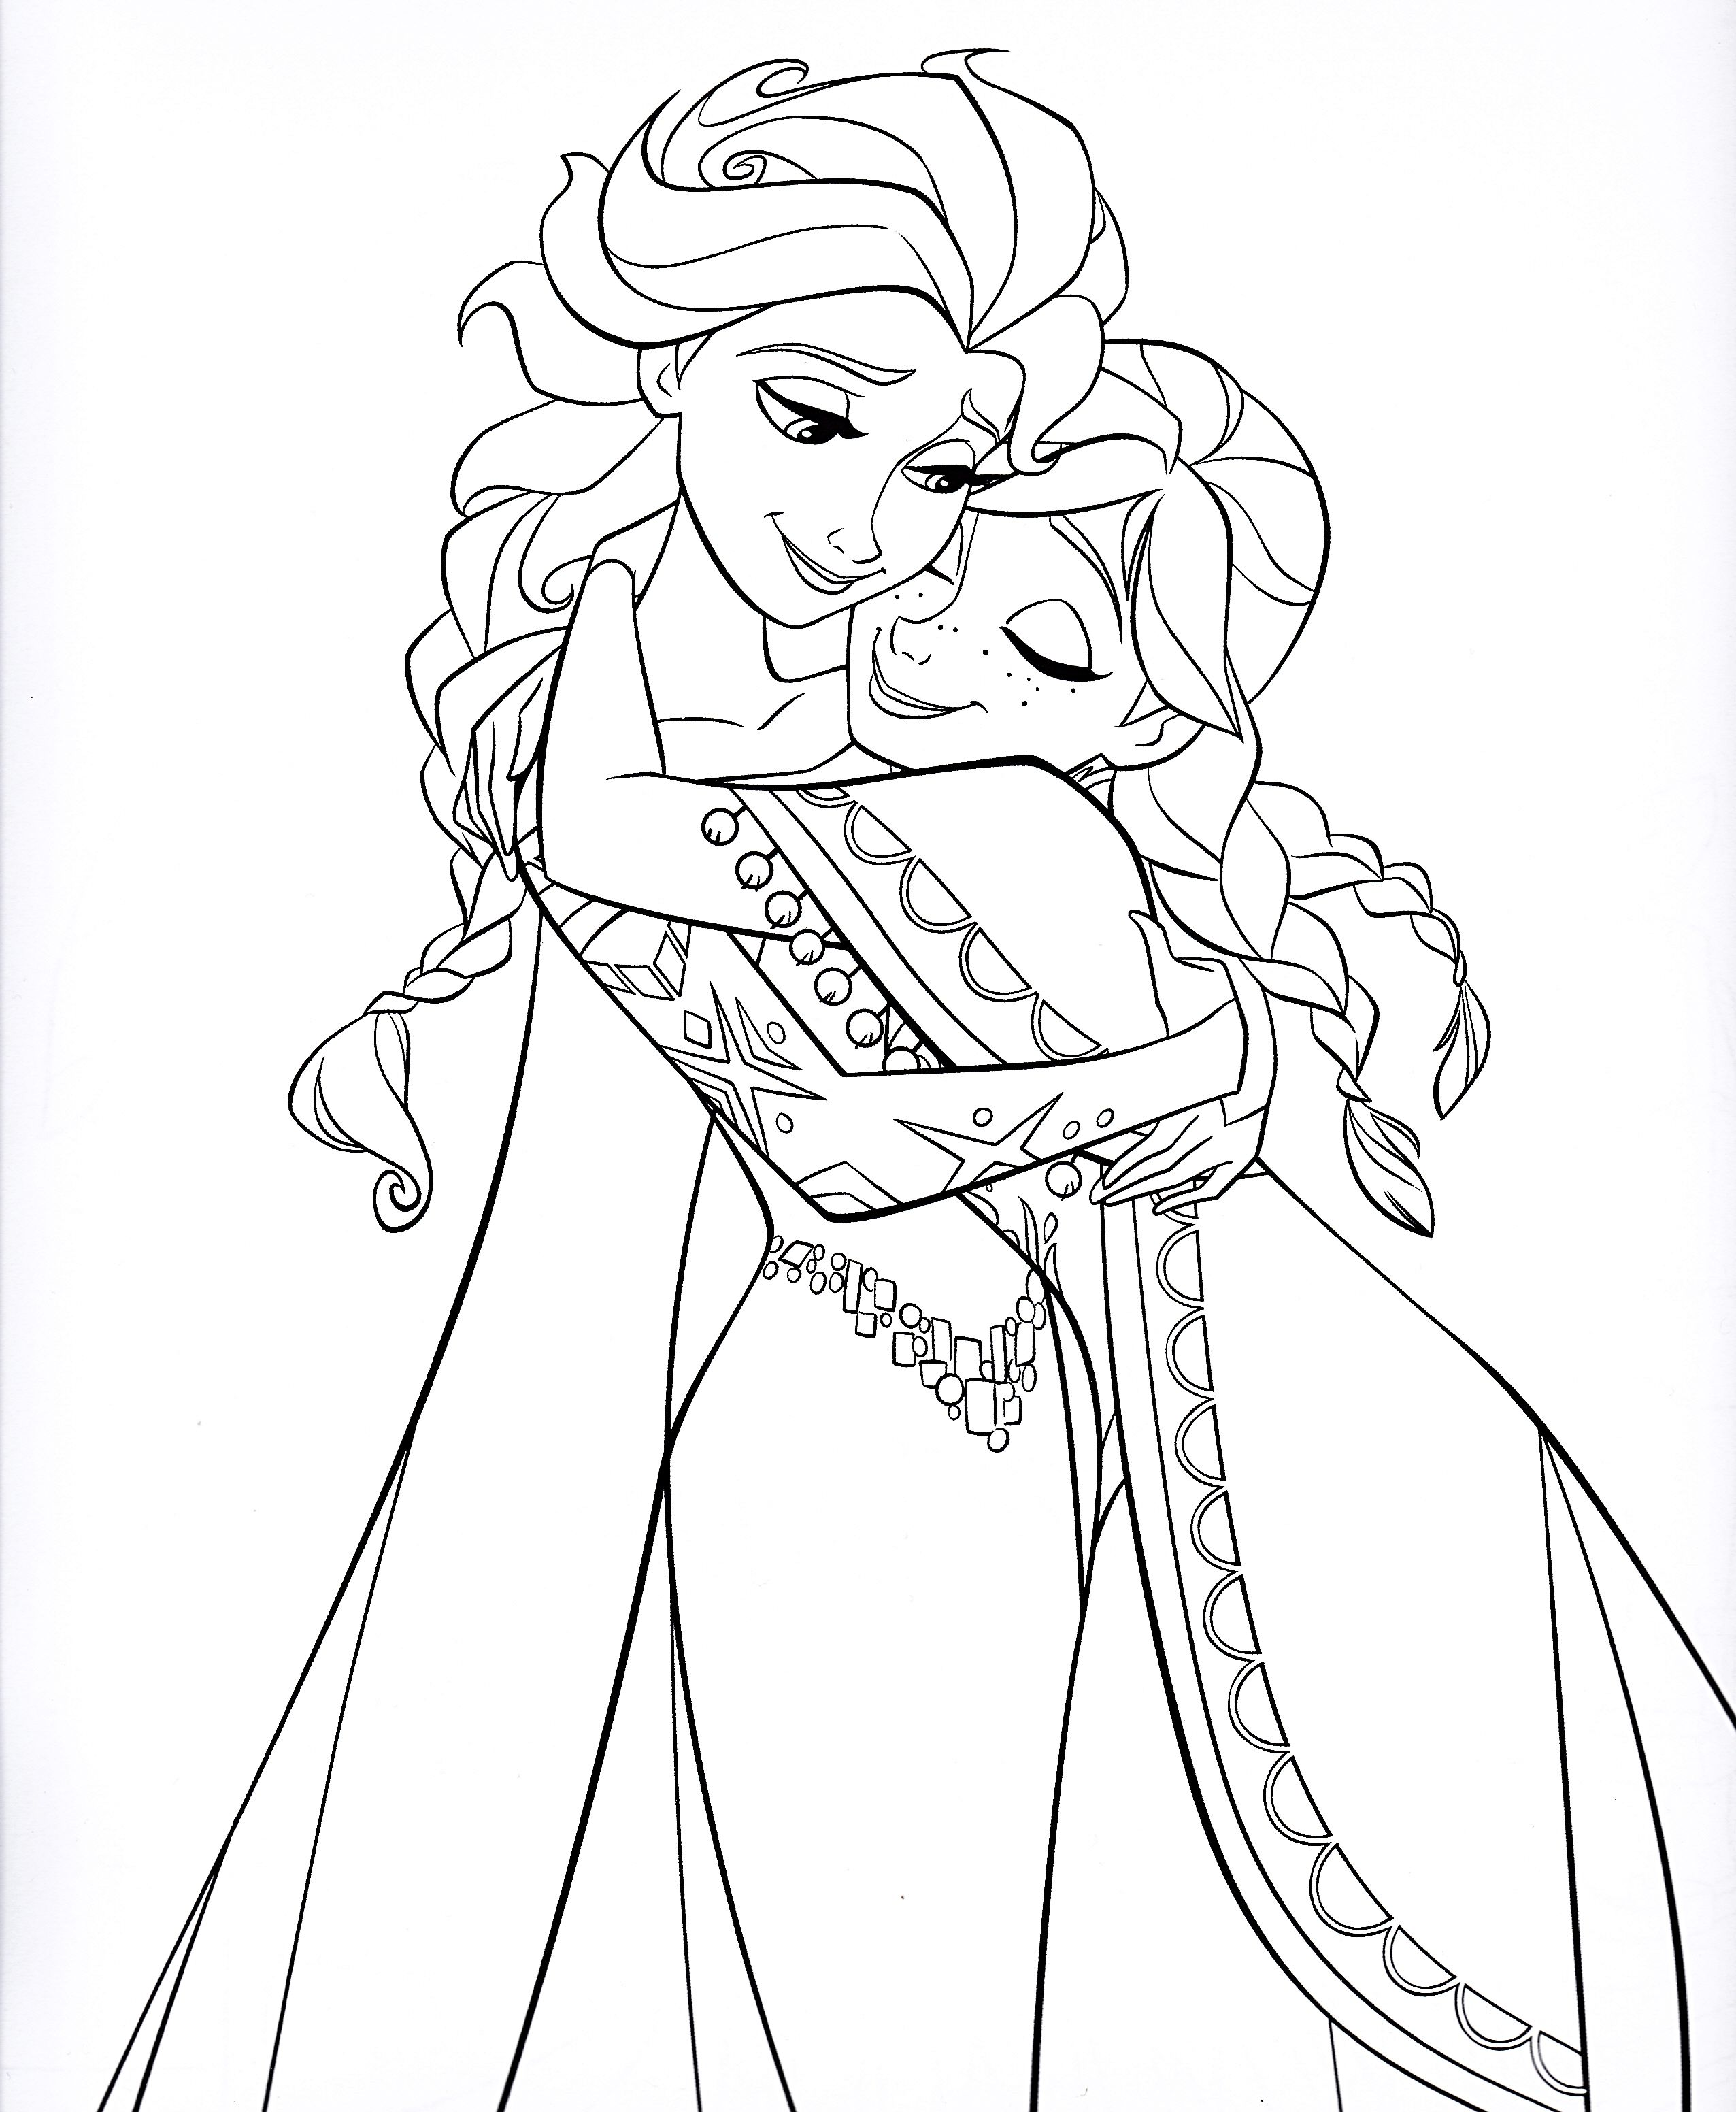 Ausmalbilder Ausdrucken Eiskönigin : Disney Frozen Coloring Sheets Walt Disney Coloring Pages Queen